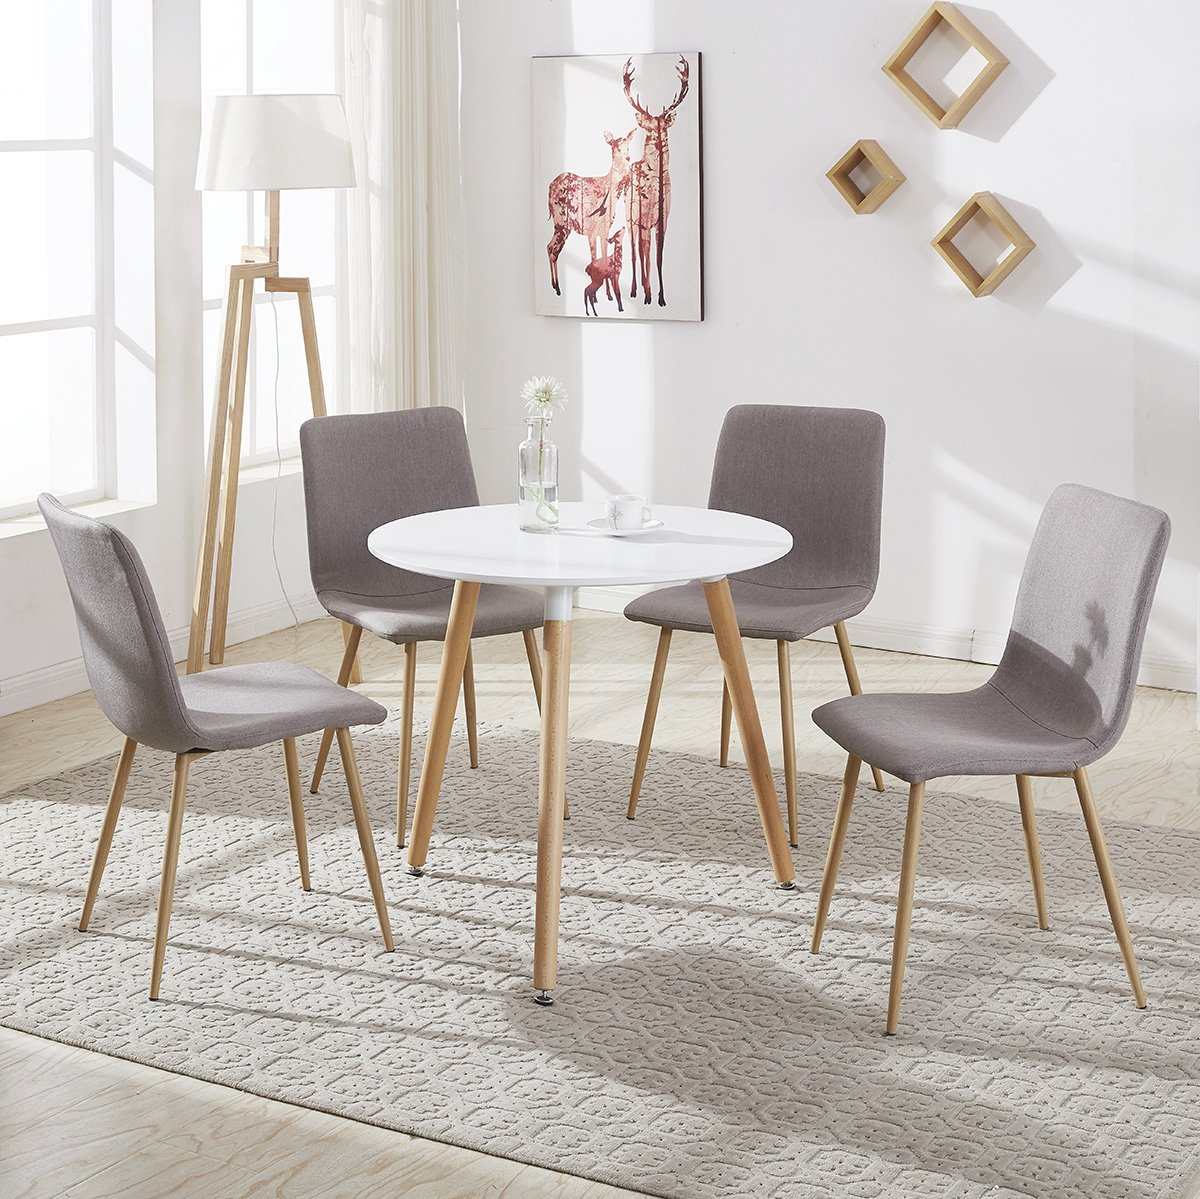 Round Dining Table and 4 Fabric Chairs with Shell Seat Solid&Comfortable, White, 80 x 75 cm, Seat Color Choice (Brown-2) GIZZA